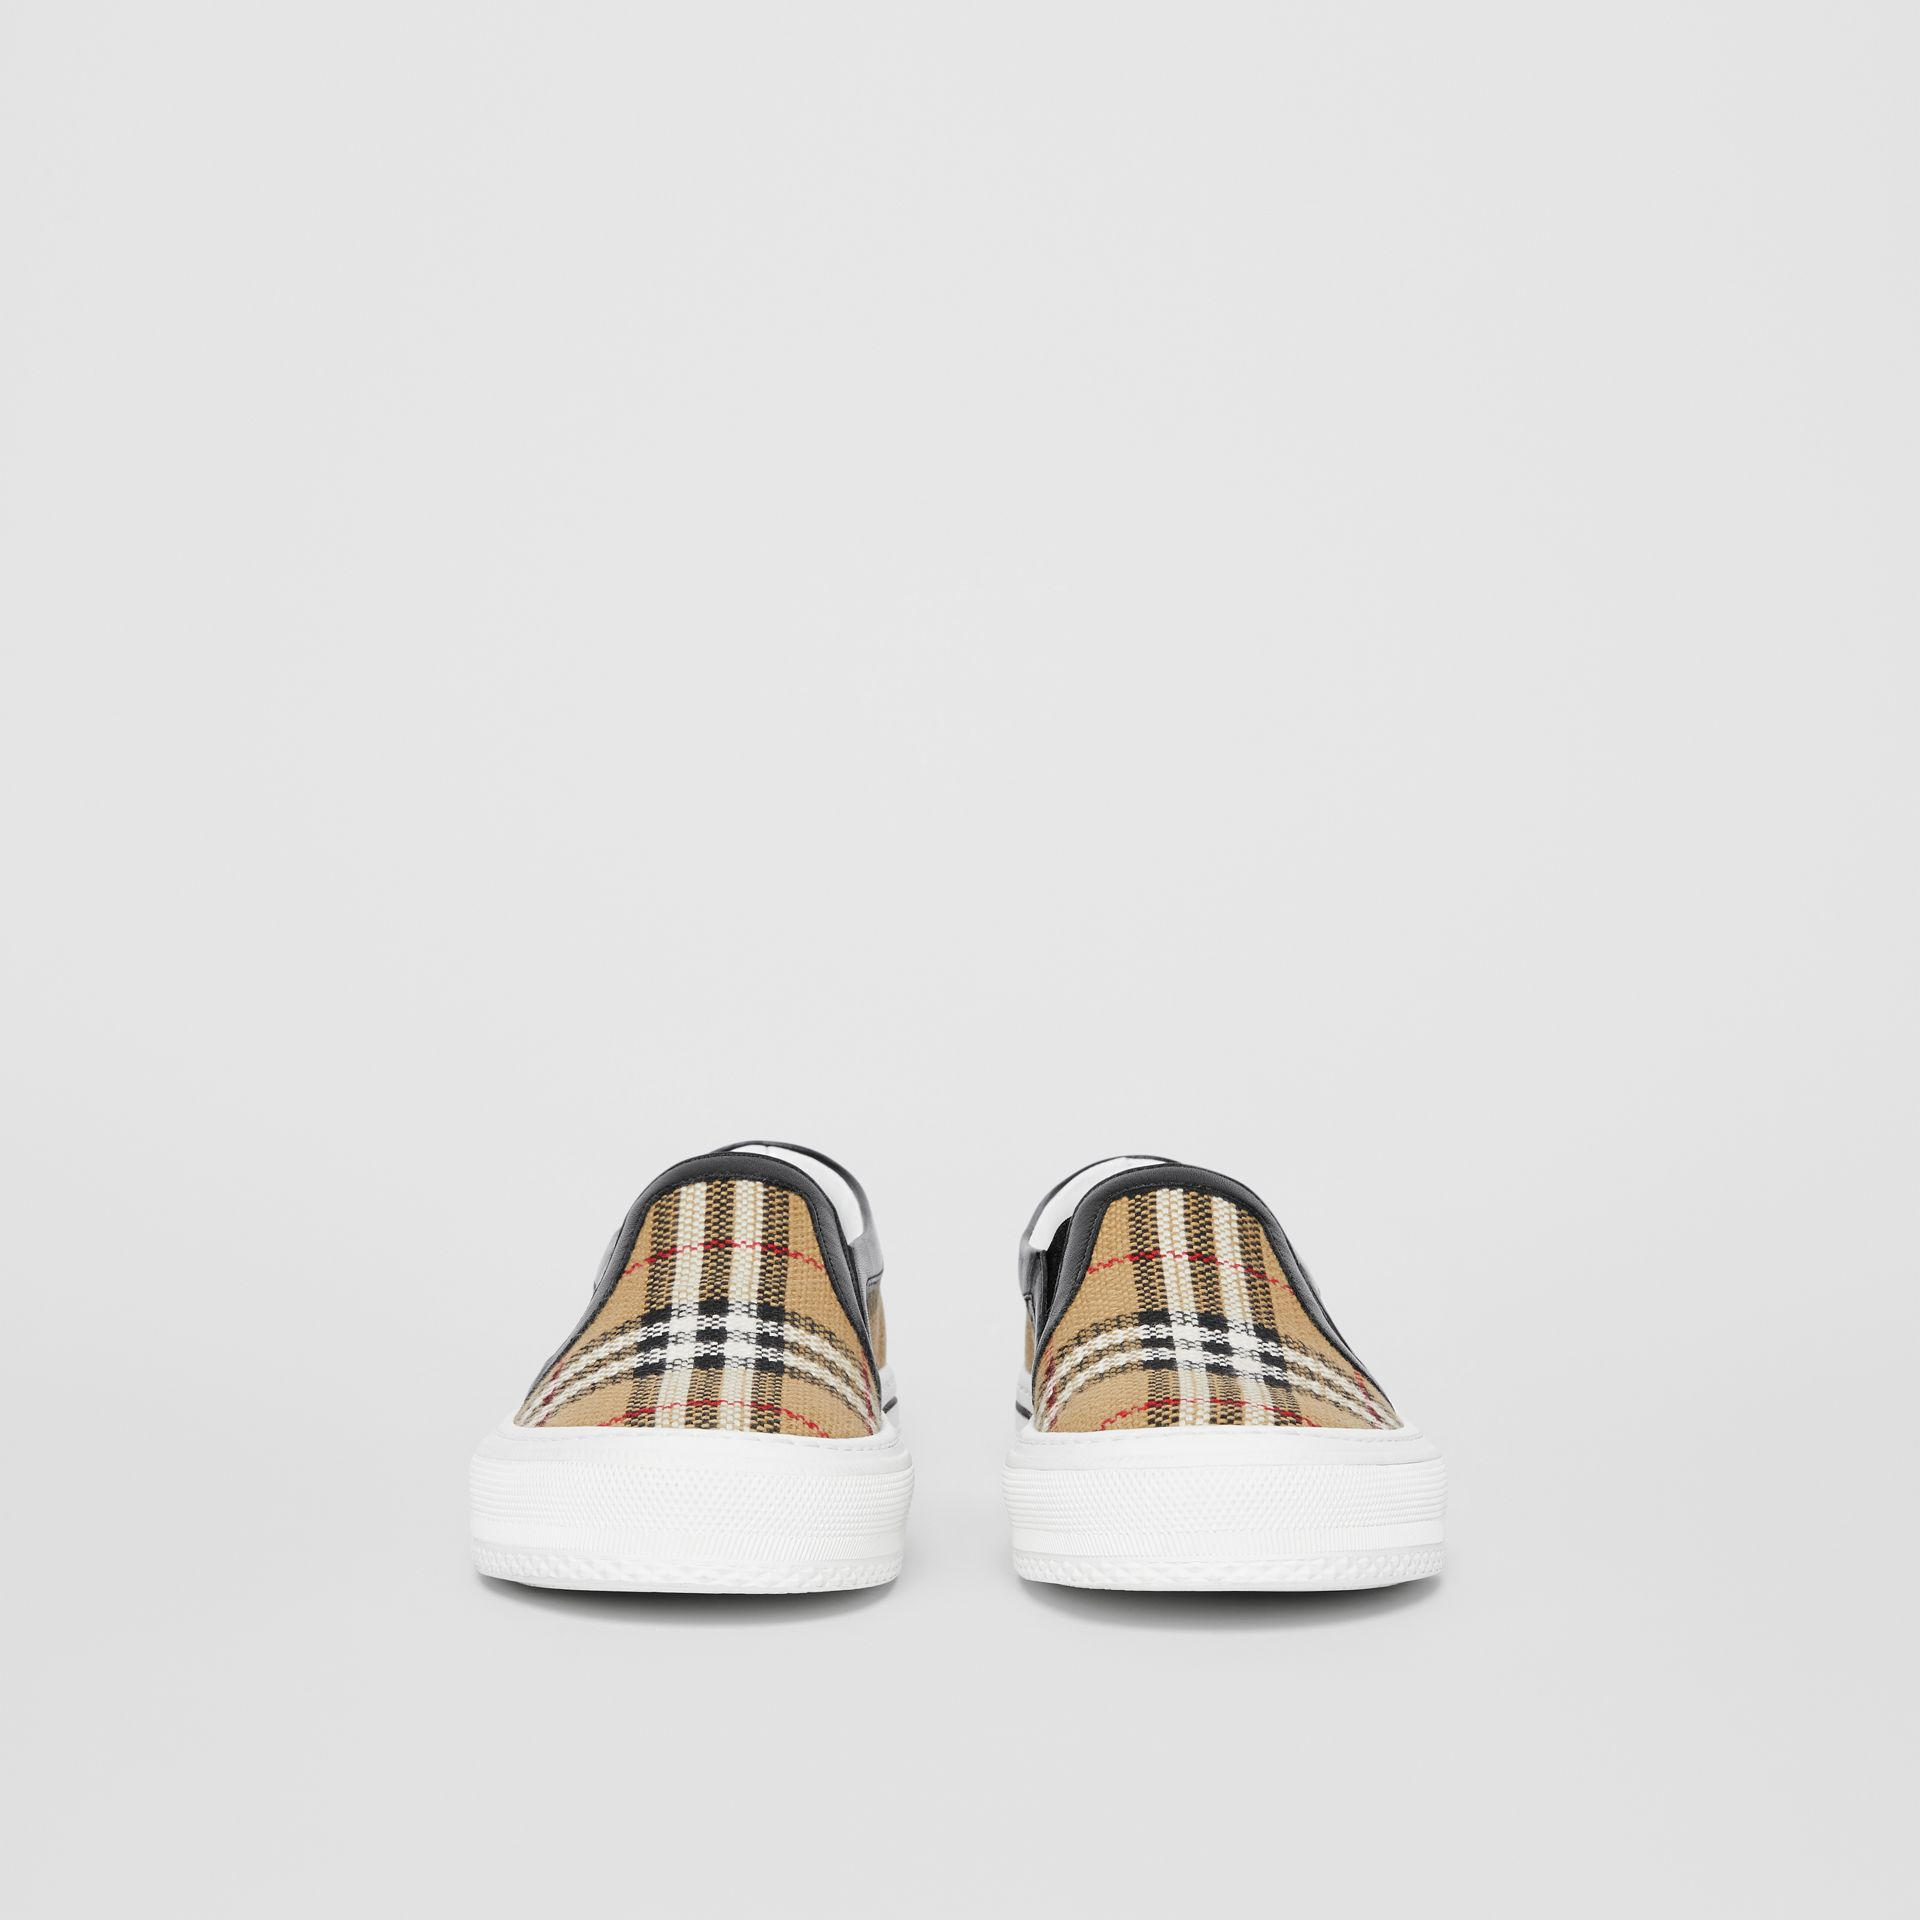 Vintage Check and Leather Slip-on Sneakers in Archive Beige - Women | Burberry - gallery image 3